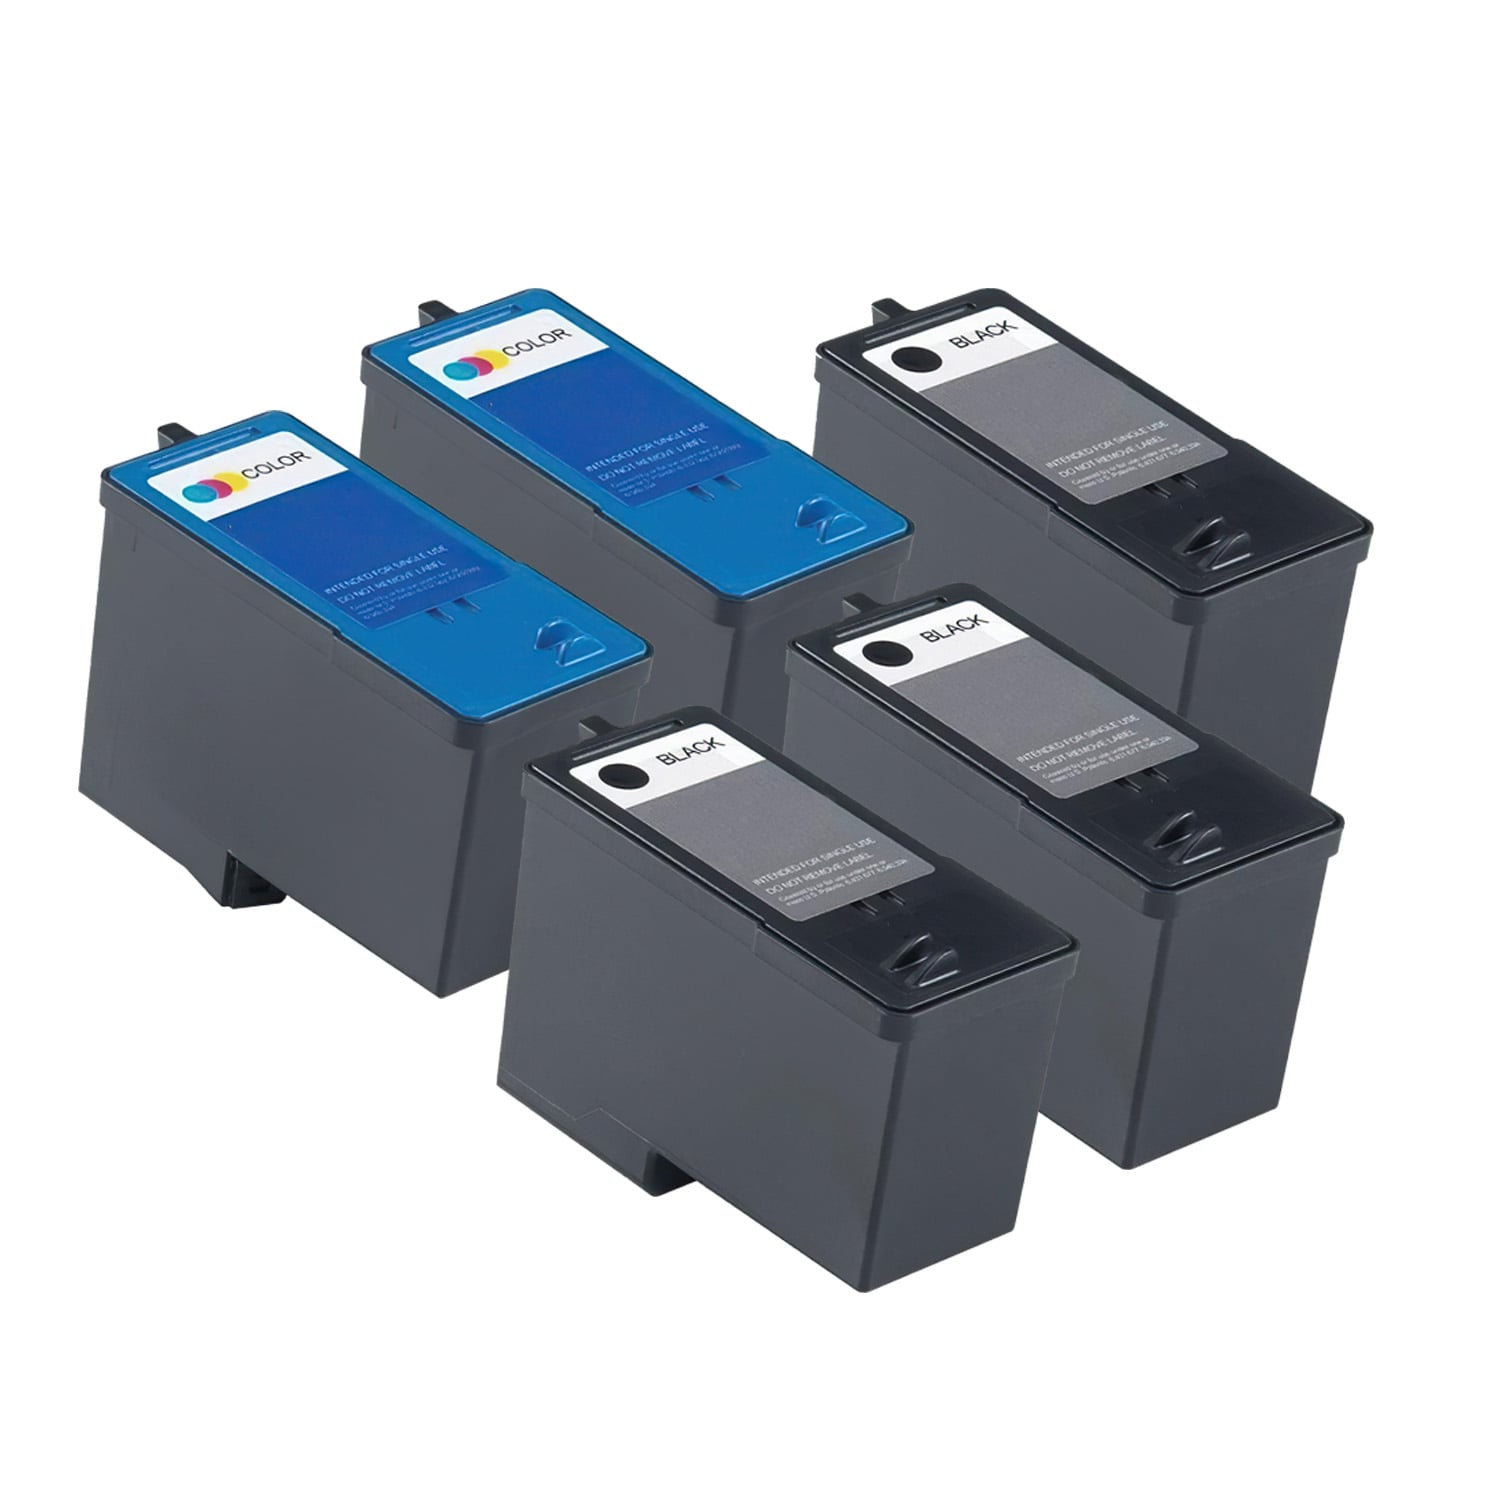 Remanufactured Dell Series 7 Inkjet High Capacity Pack - 5 Cartridges